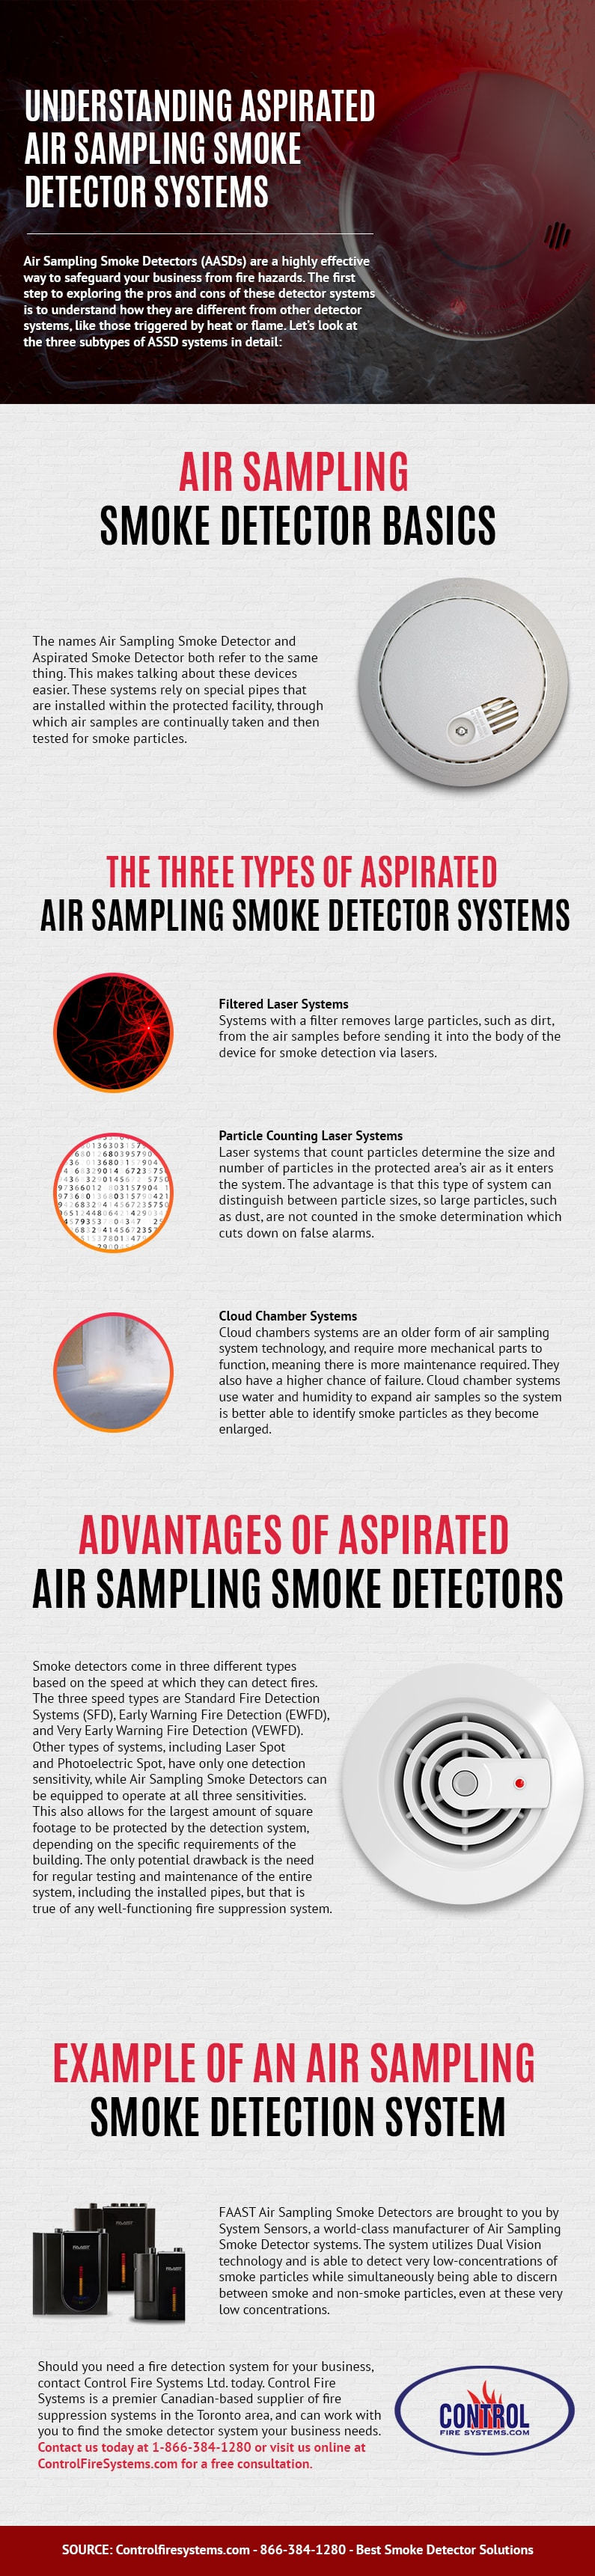 Understanding Aspirated Air Sampling Smoke Detector Systems - Control Fire Systems Ifographic